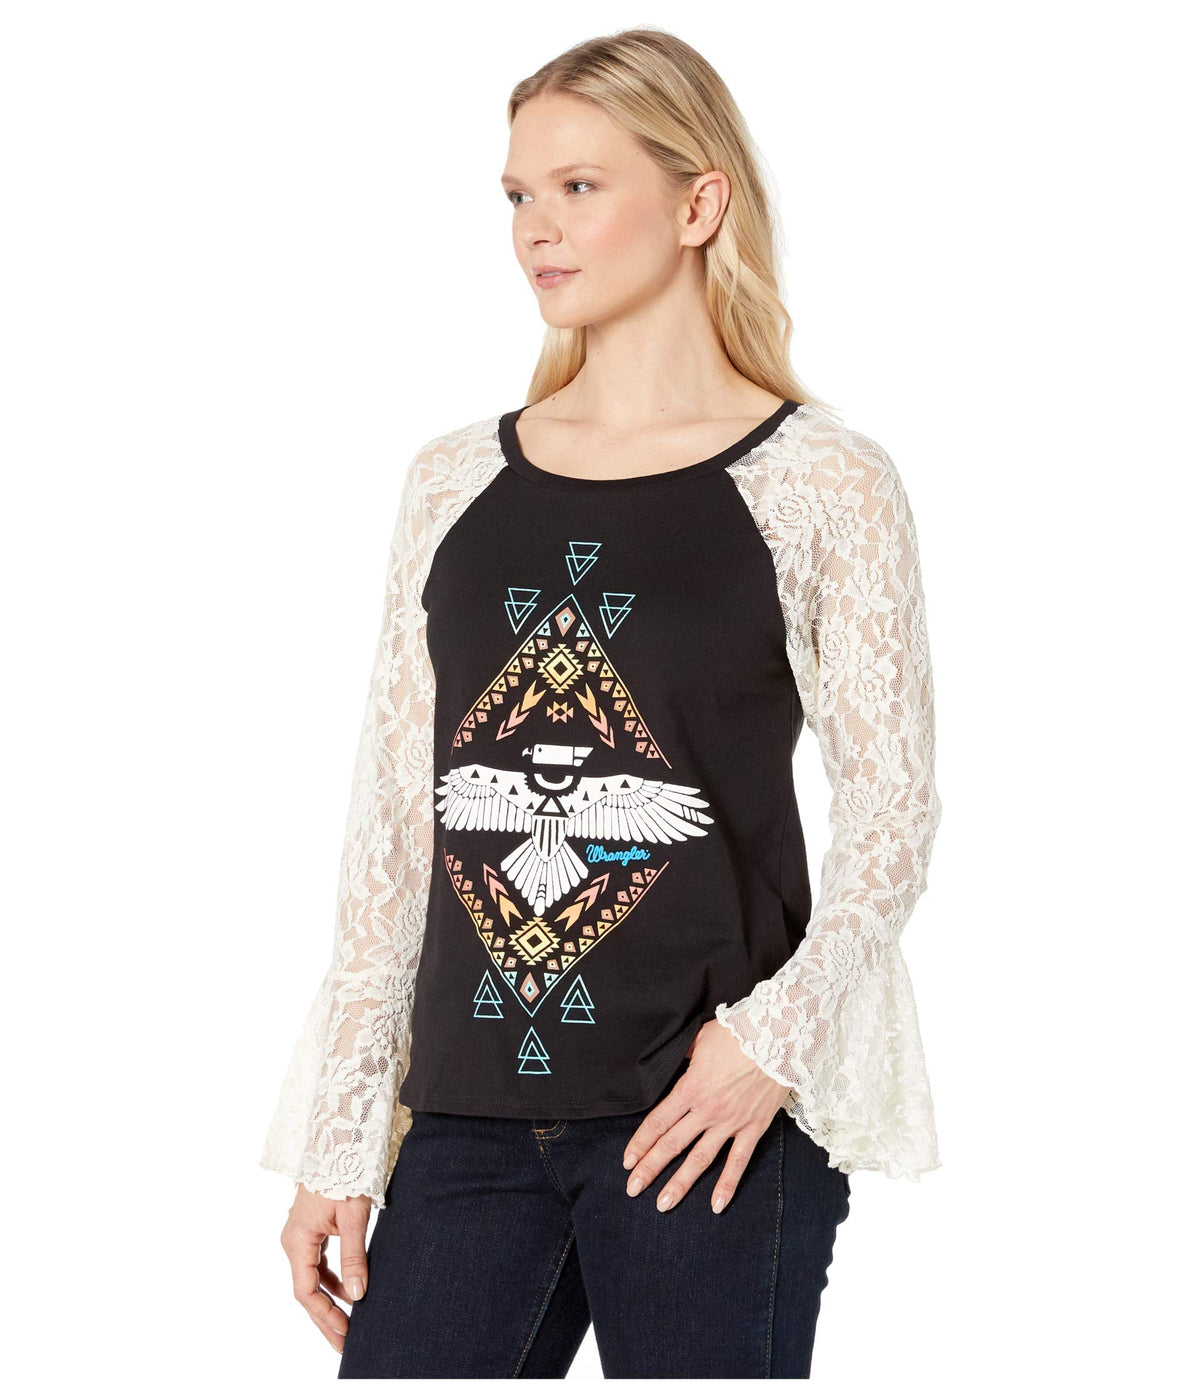 Western Knit with Graphic and Lace